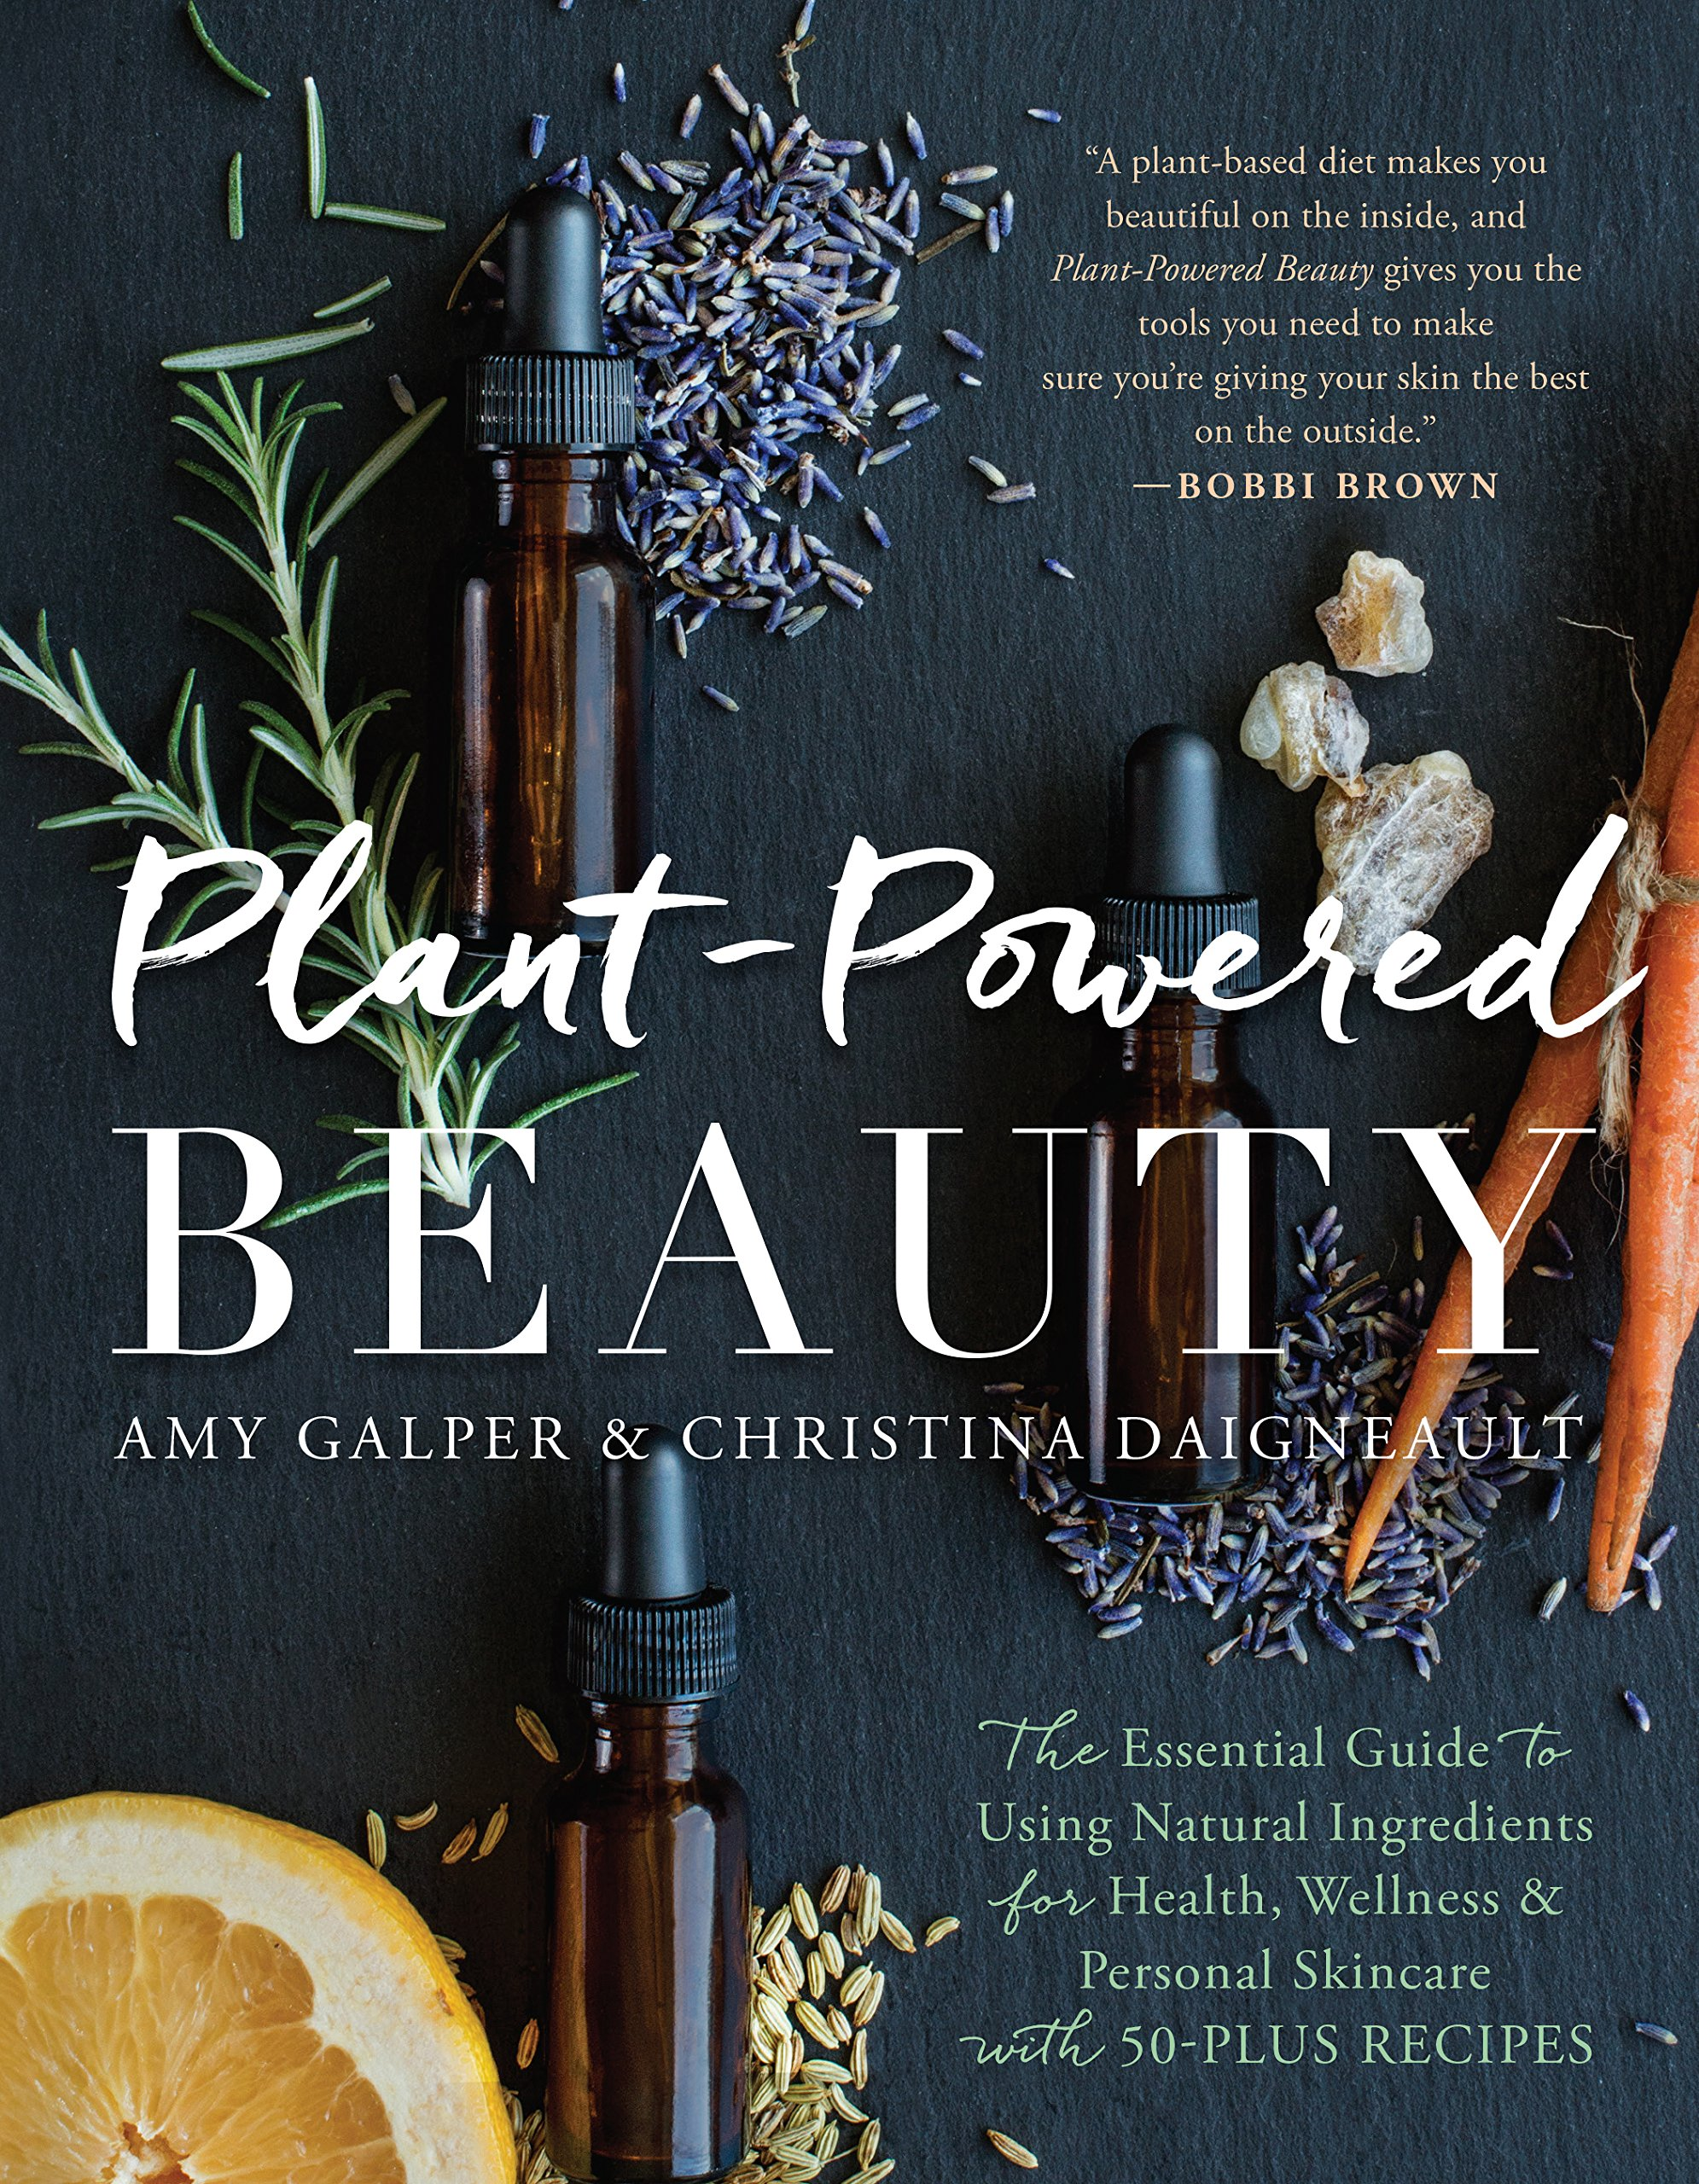 Plant-Powered Beauty: The Essential Guide to Using Natural Ingredients for Health, Wellness, and Personal Skincare